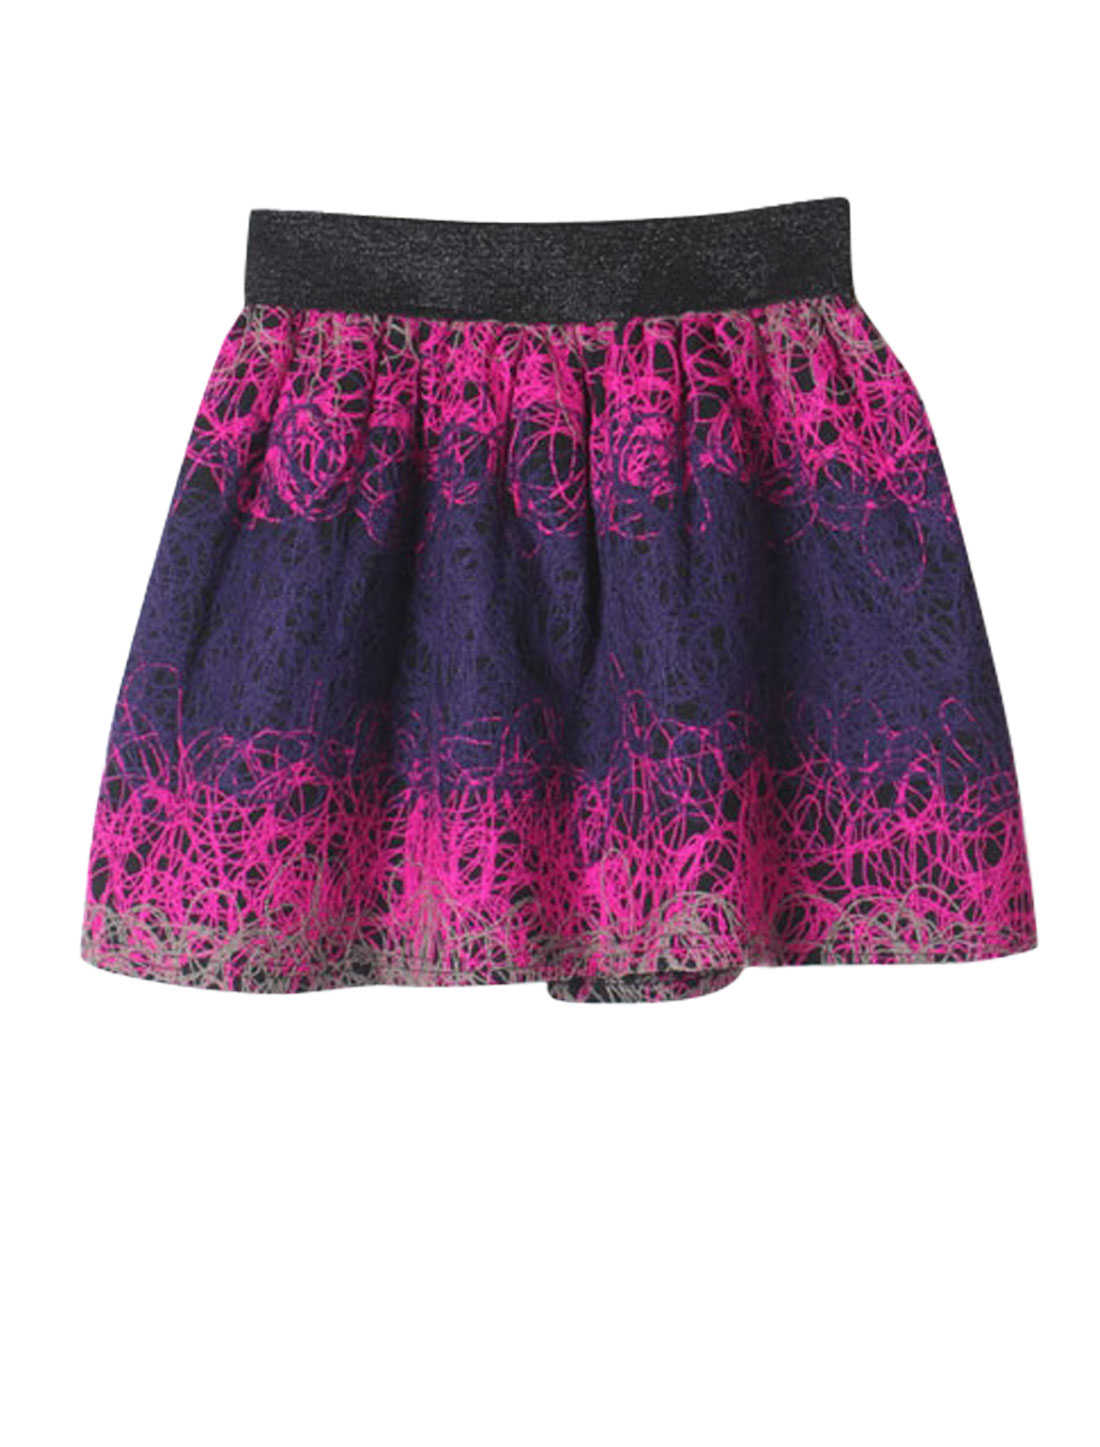 Lady Embroidery Design Glitter Detail Full Lined Full Skirt Fuchsia Navy Blue S